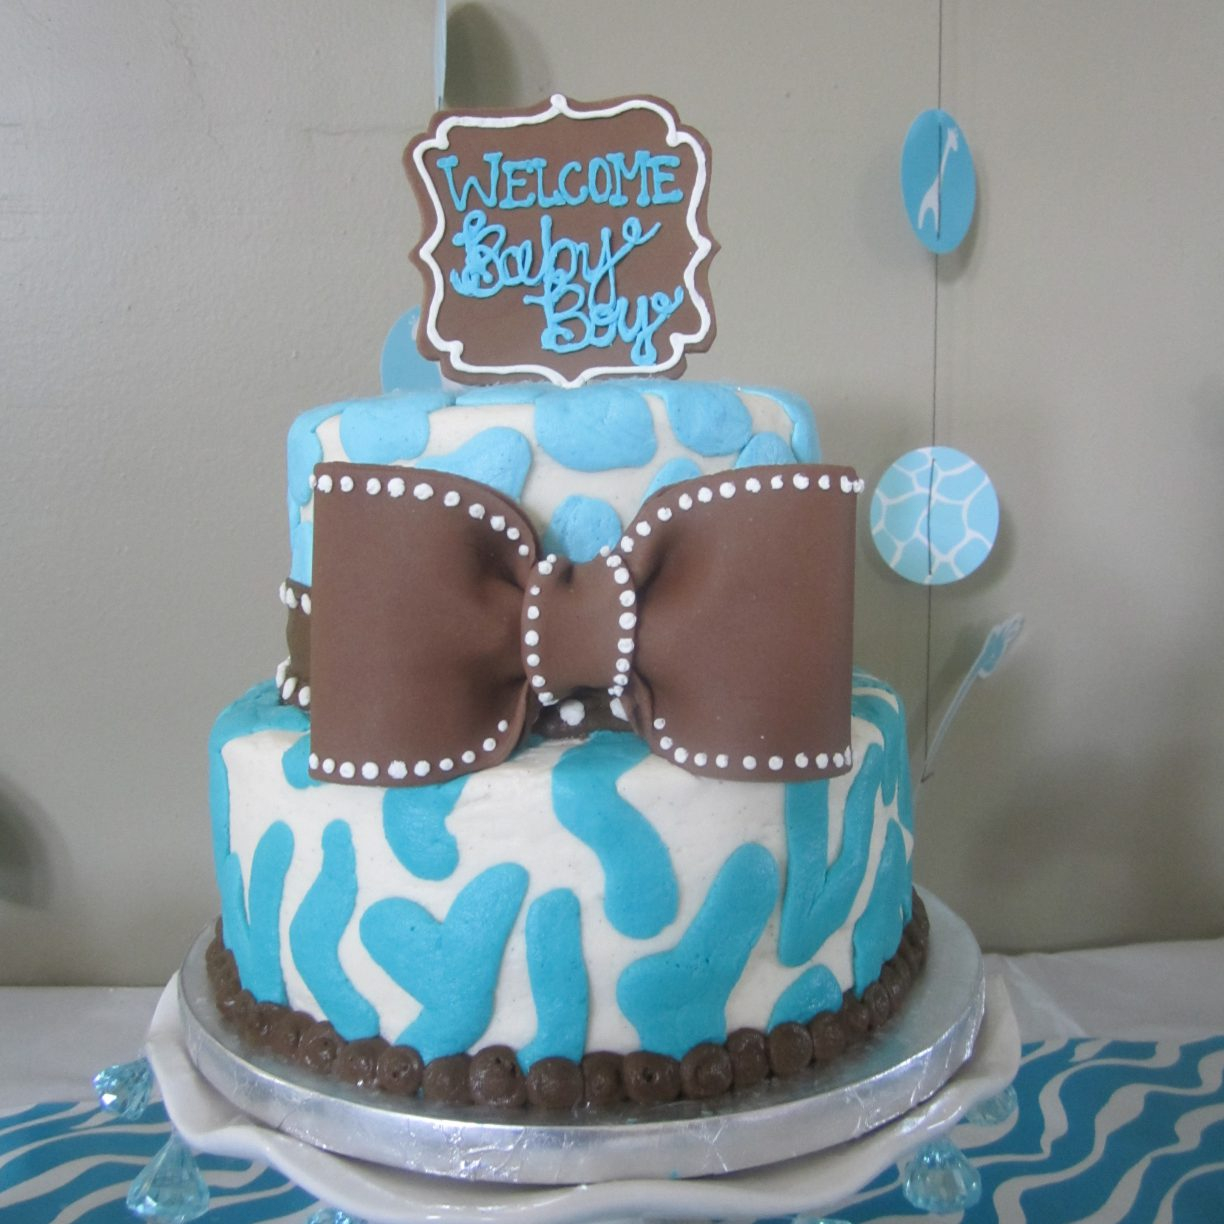 Elite Baby Showerfe Theme Cakecentral Com Wedding Cakes Archaicawful Cake with Giraffe Themed Baby Shower